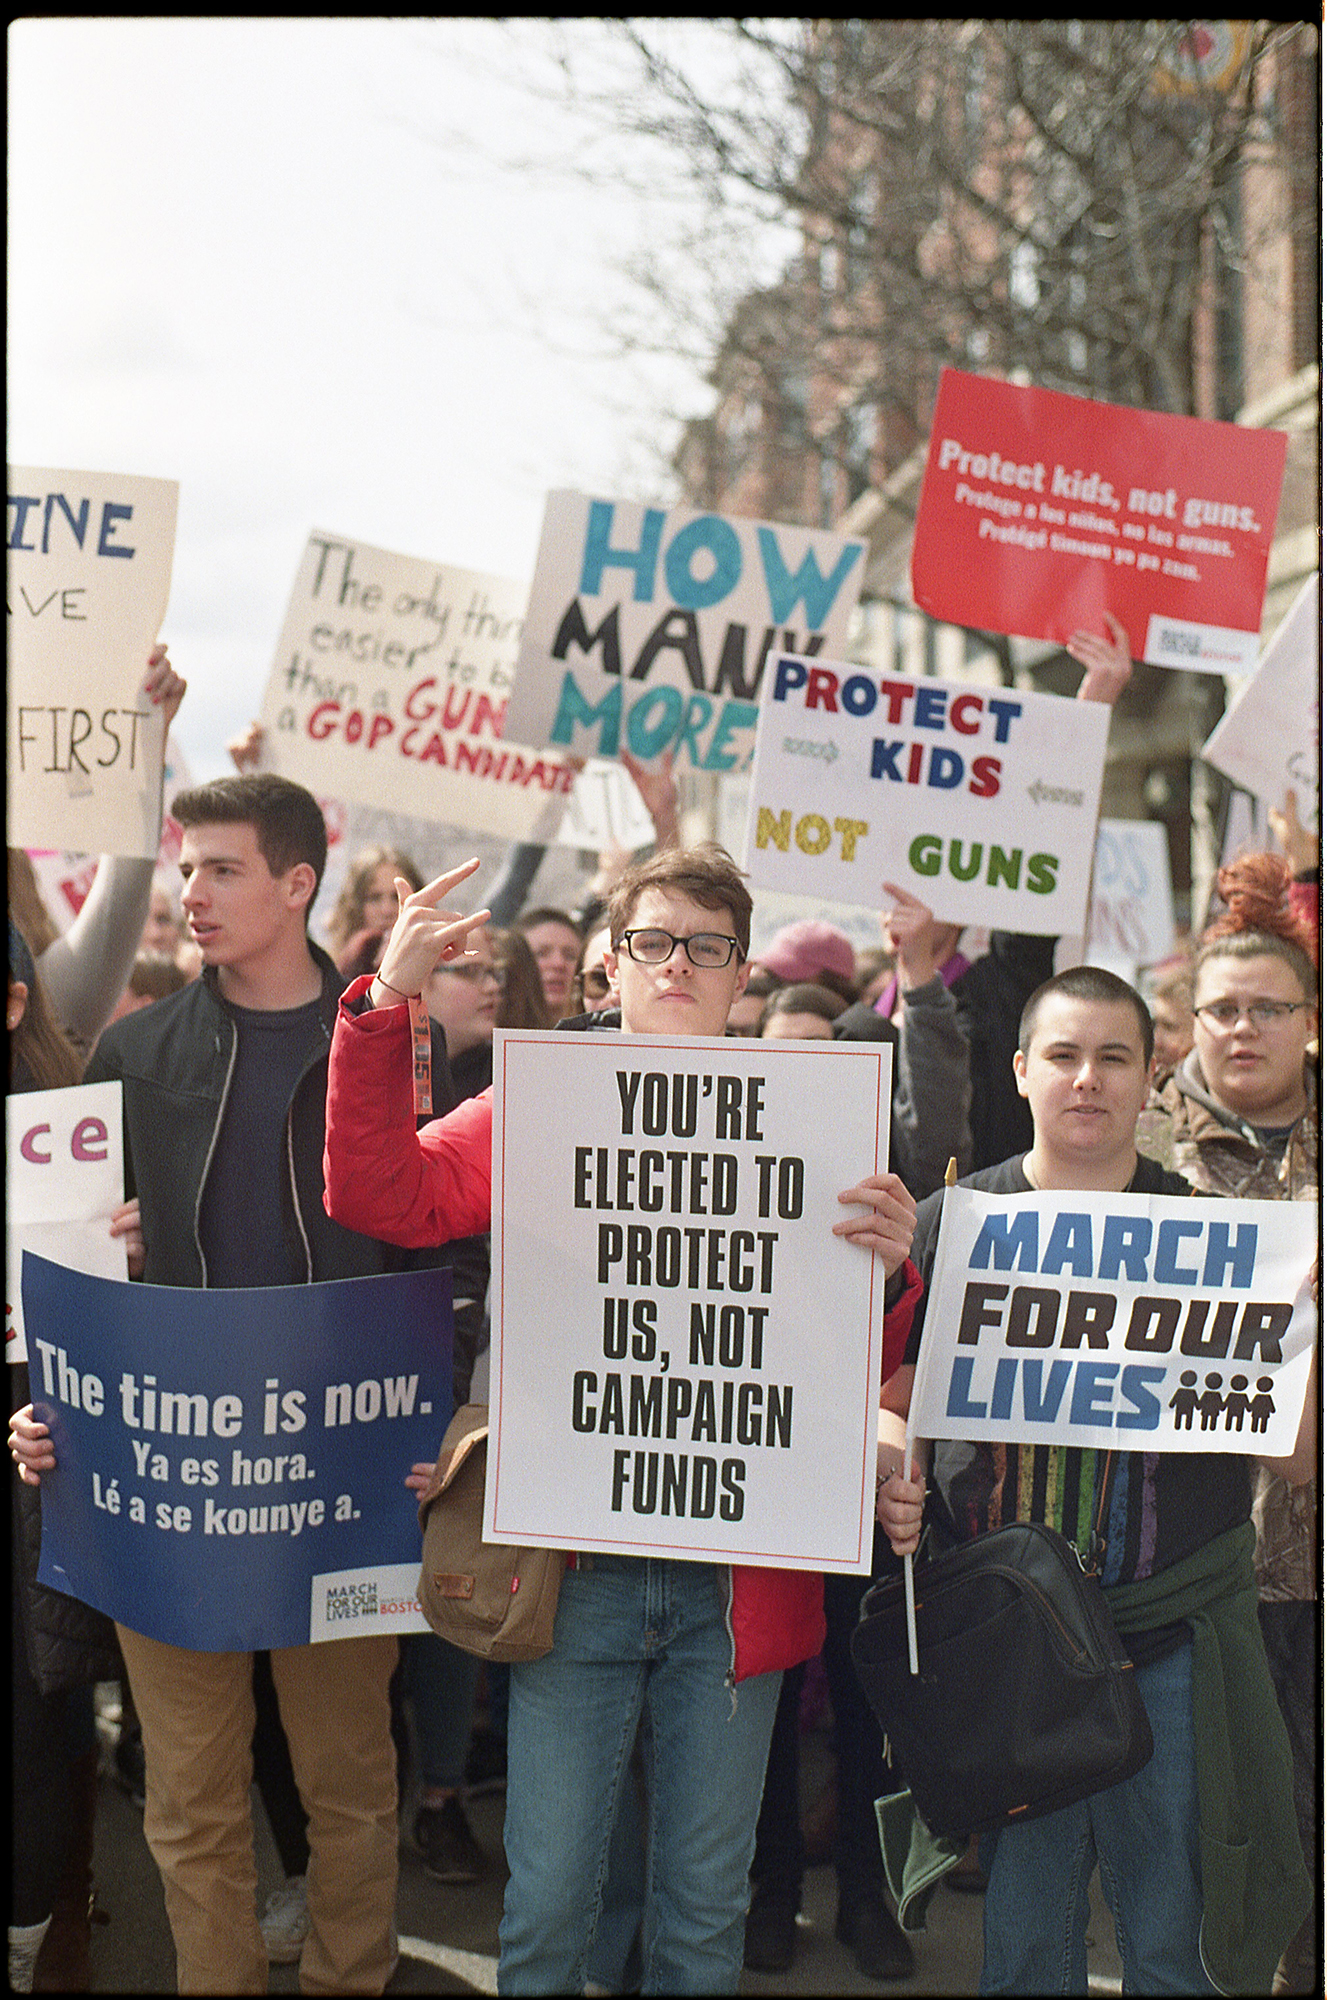 15 March for Our Lives - Boston, MA - March 24, 2018 - FilterGrade